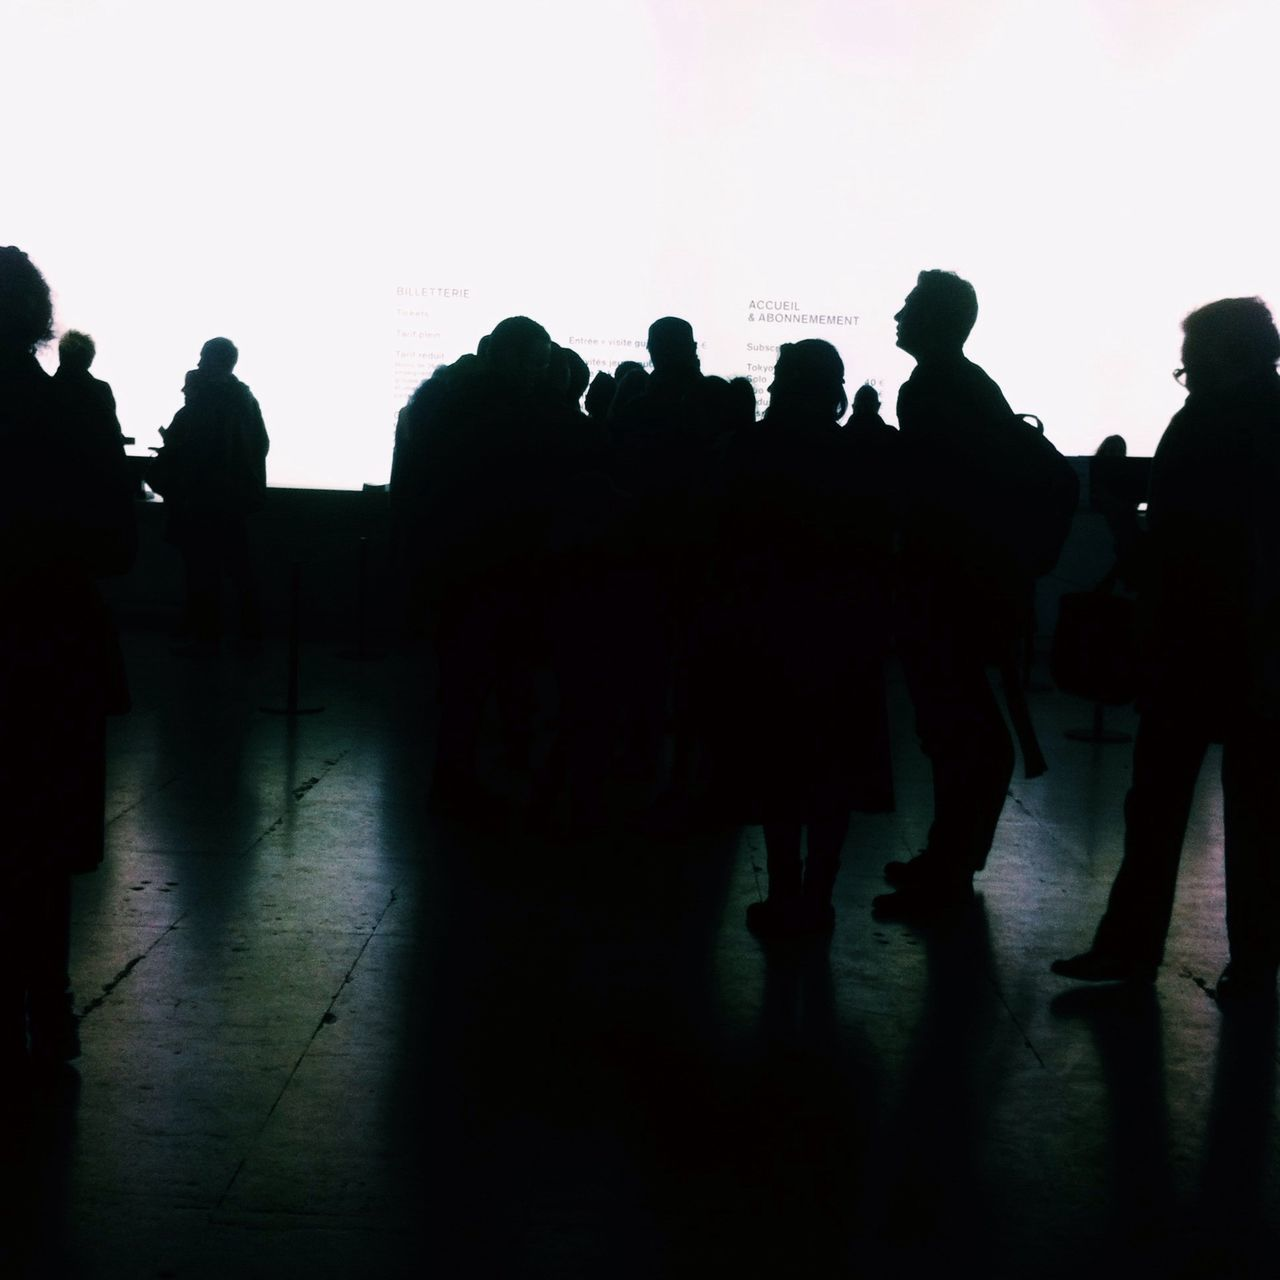 The Crowd Exhibition